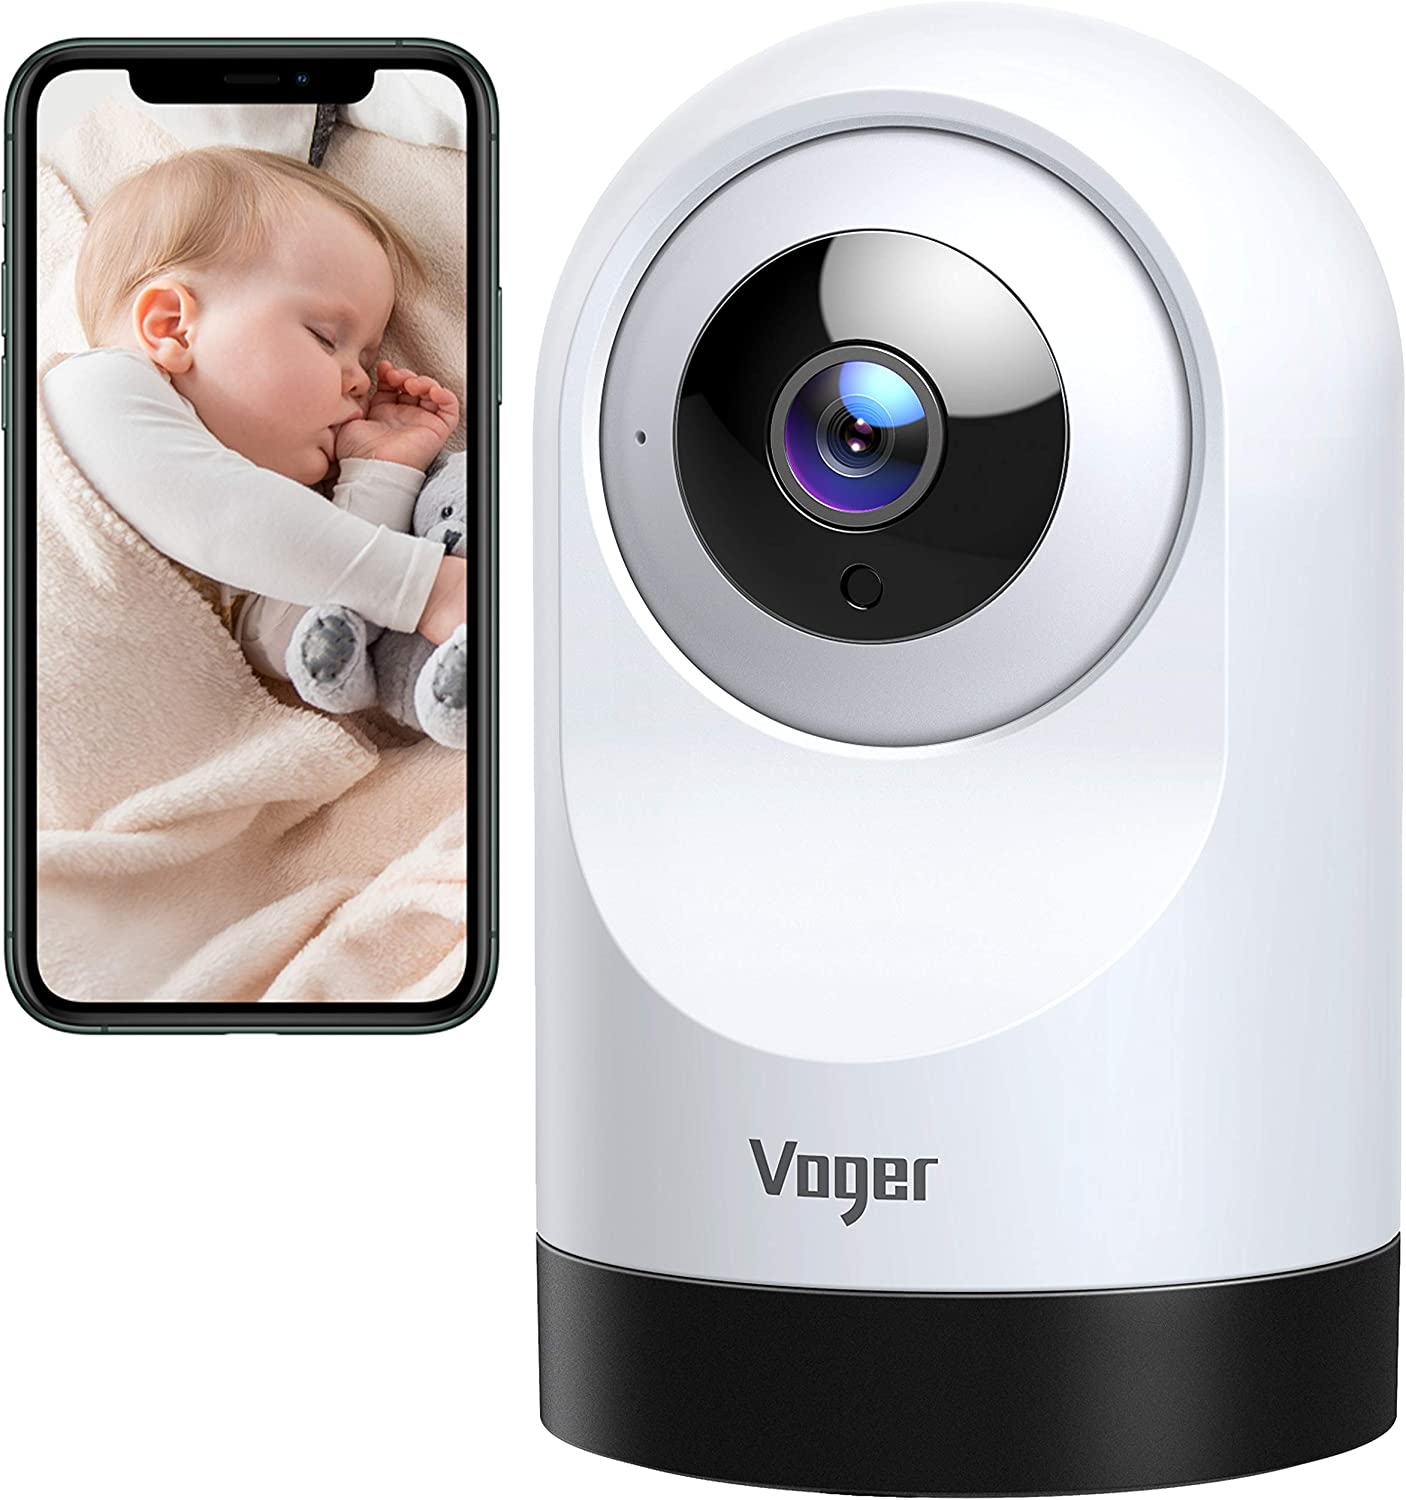 Voger Baby Monitor, 360-degree Wi-Fi Home Security Camera, PTZ Indoor Camera with 1080P IR Night Vision, Motion Tracking, 2-Way Audio, Works with Alexa